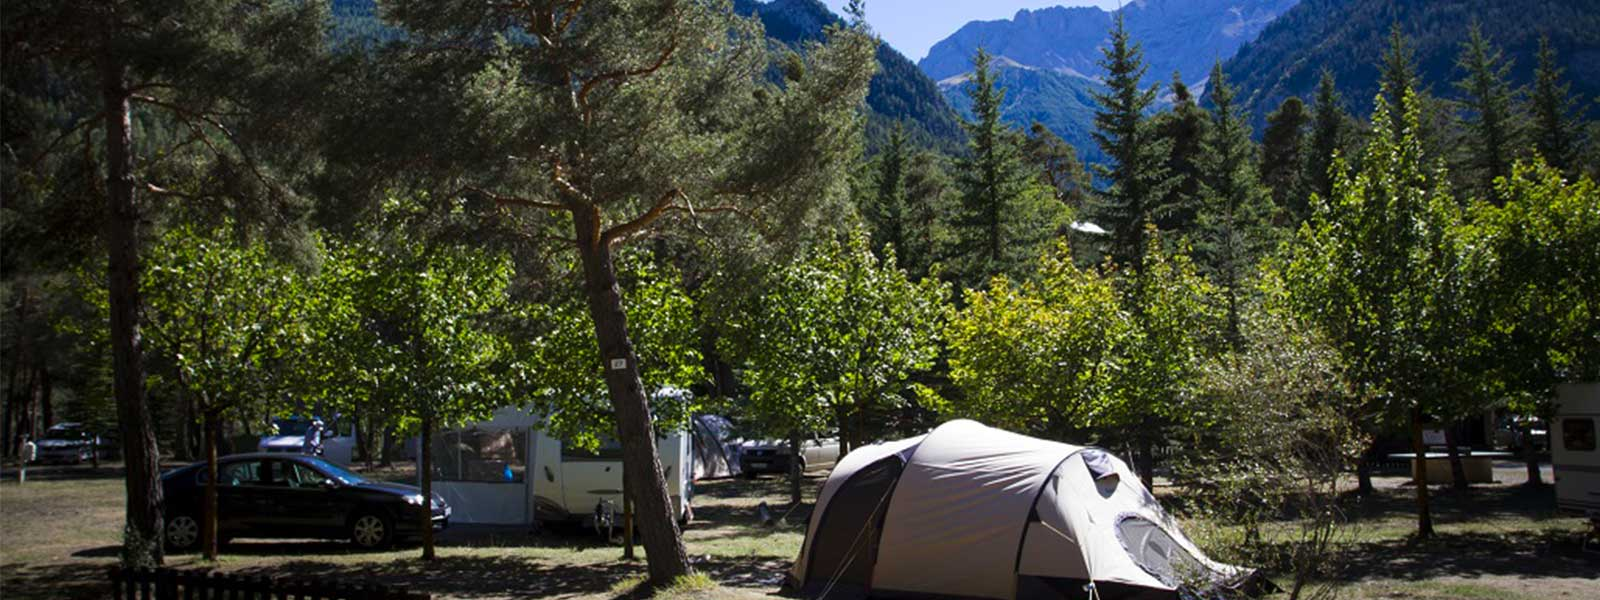 location d'emplacements dans camping alpes